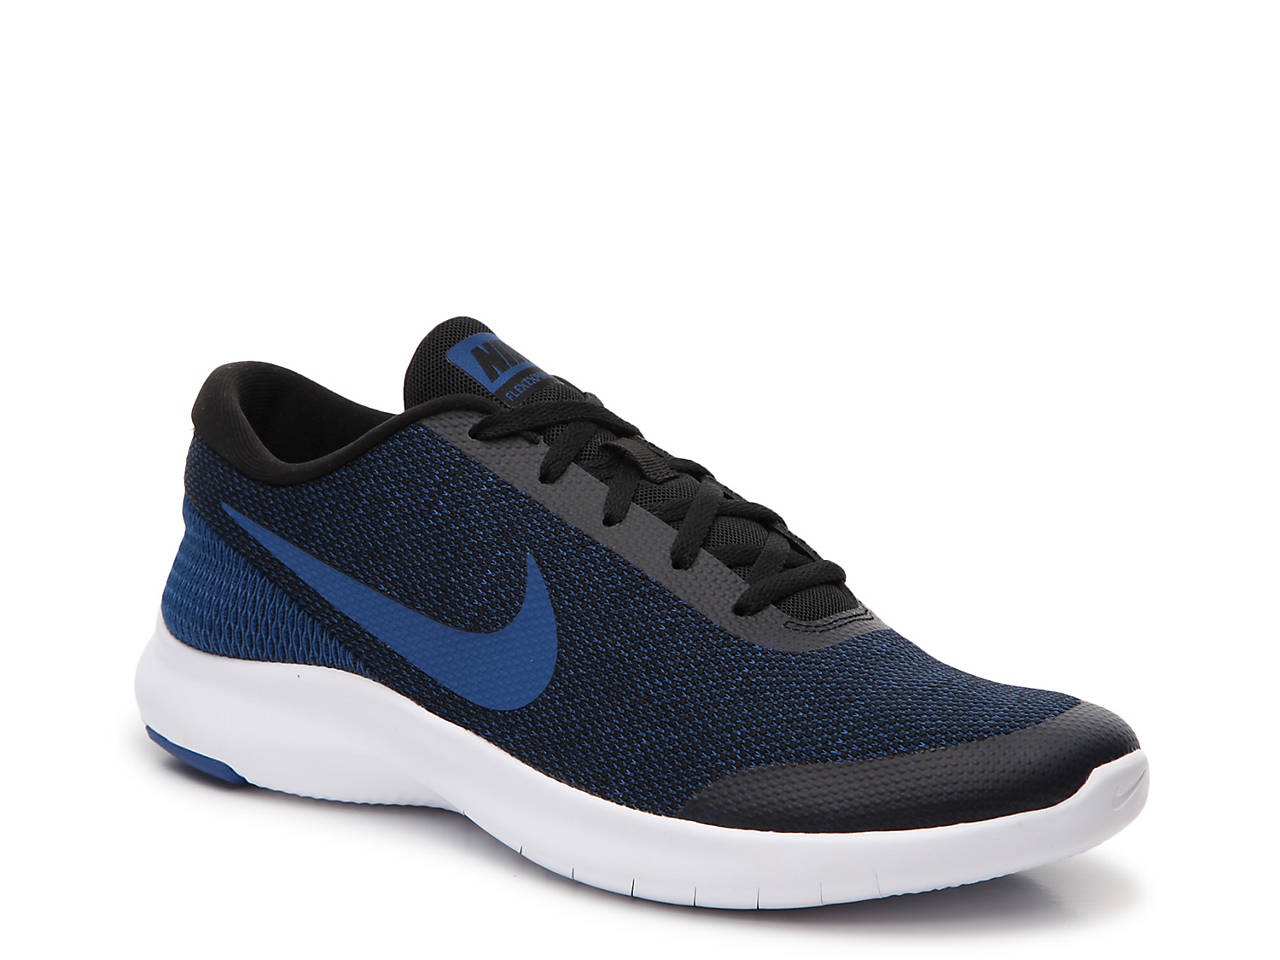 7f624c759ffb Nike Flex Experience Run 7 Lightweight Running Shoe - Men s Men s ...